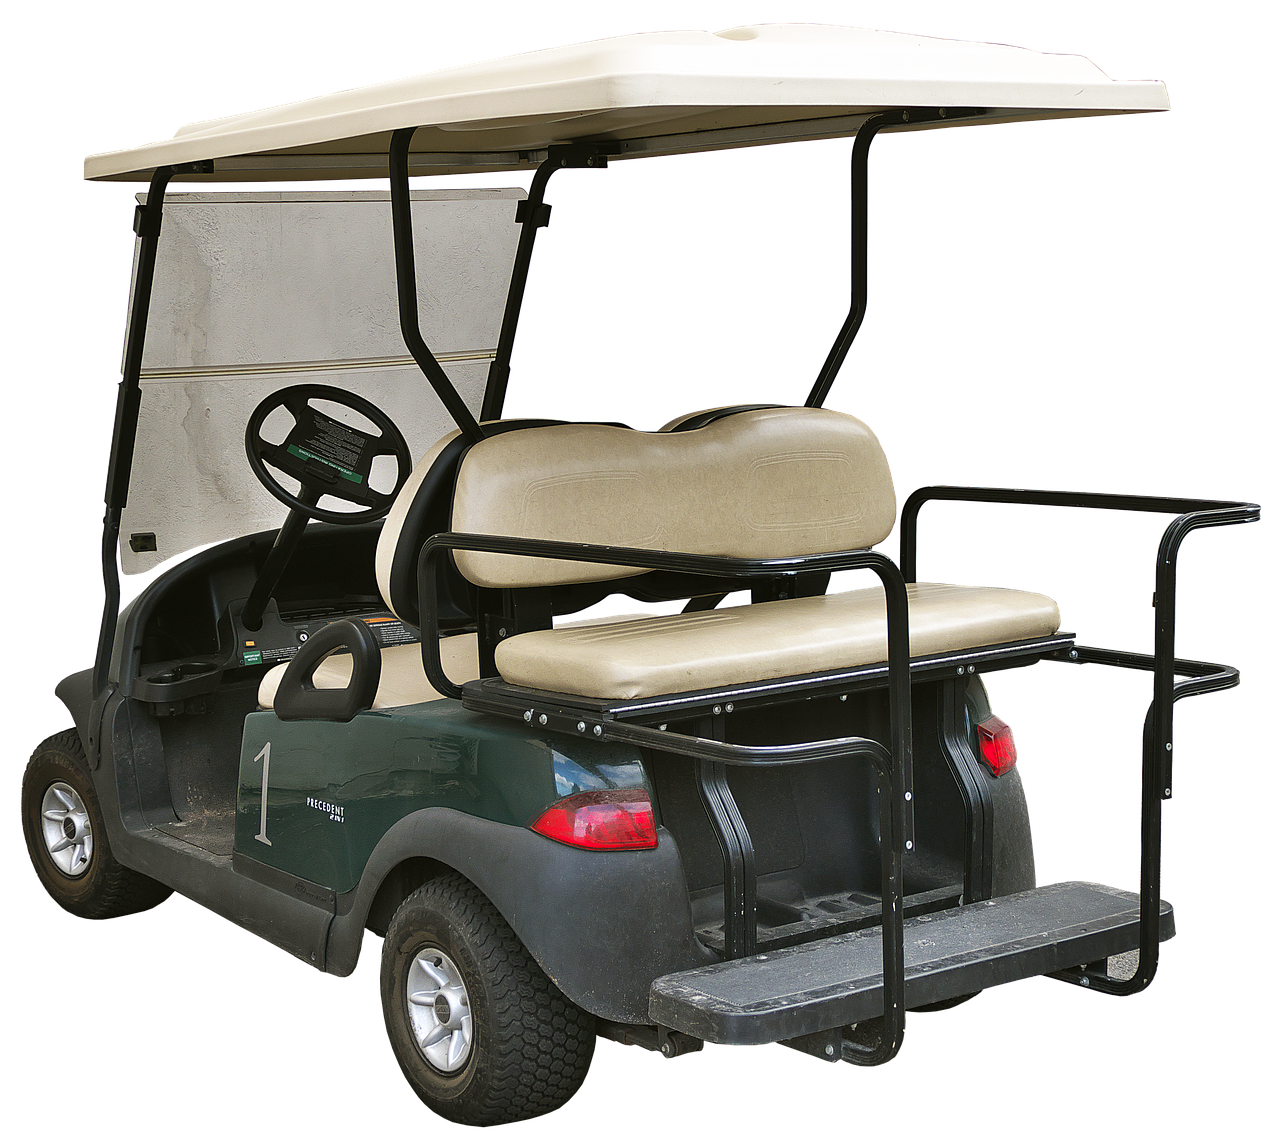 electric vehicle,electric car,elektrocar,electric golf cart,golf cart,golf car,golf carts,turf carts,electro,clubcar,electric motor,electric drive,electrically,isolated,free pictures, free photos, free images, royalty free, free illustrations, public domain